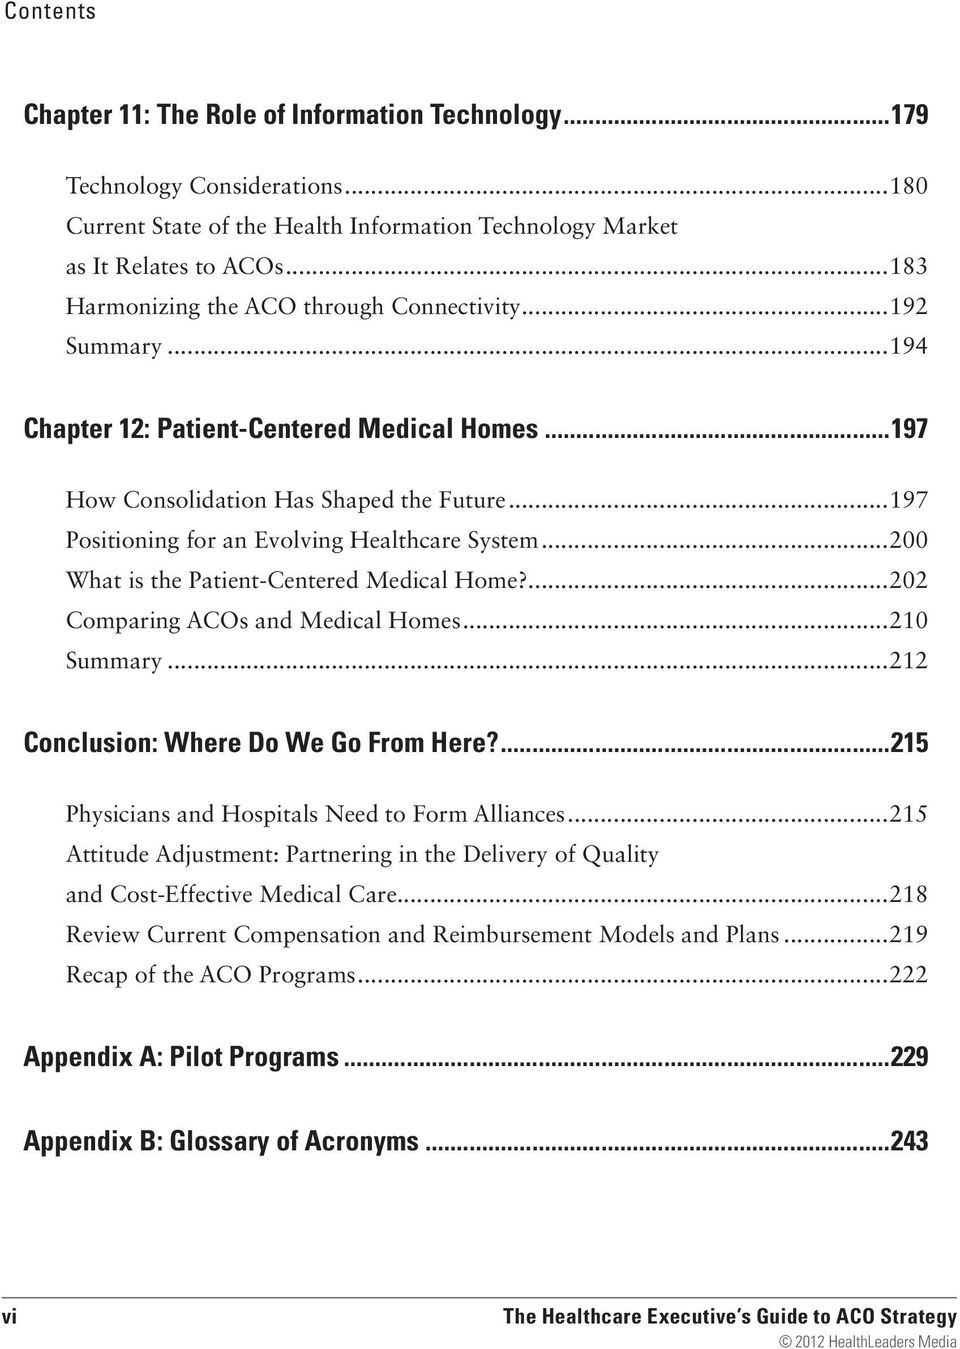 ..197 Positioning for an Evolving Healthcare System...200 What is the Patient-Centered Medical Home?...202 Comparing ACOs and Medical Homes...210 Summary...212 Conclusion: Where Do We Go From Here?